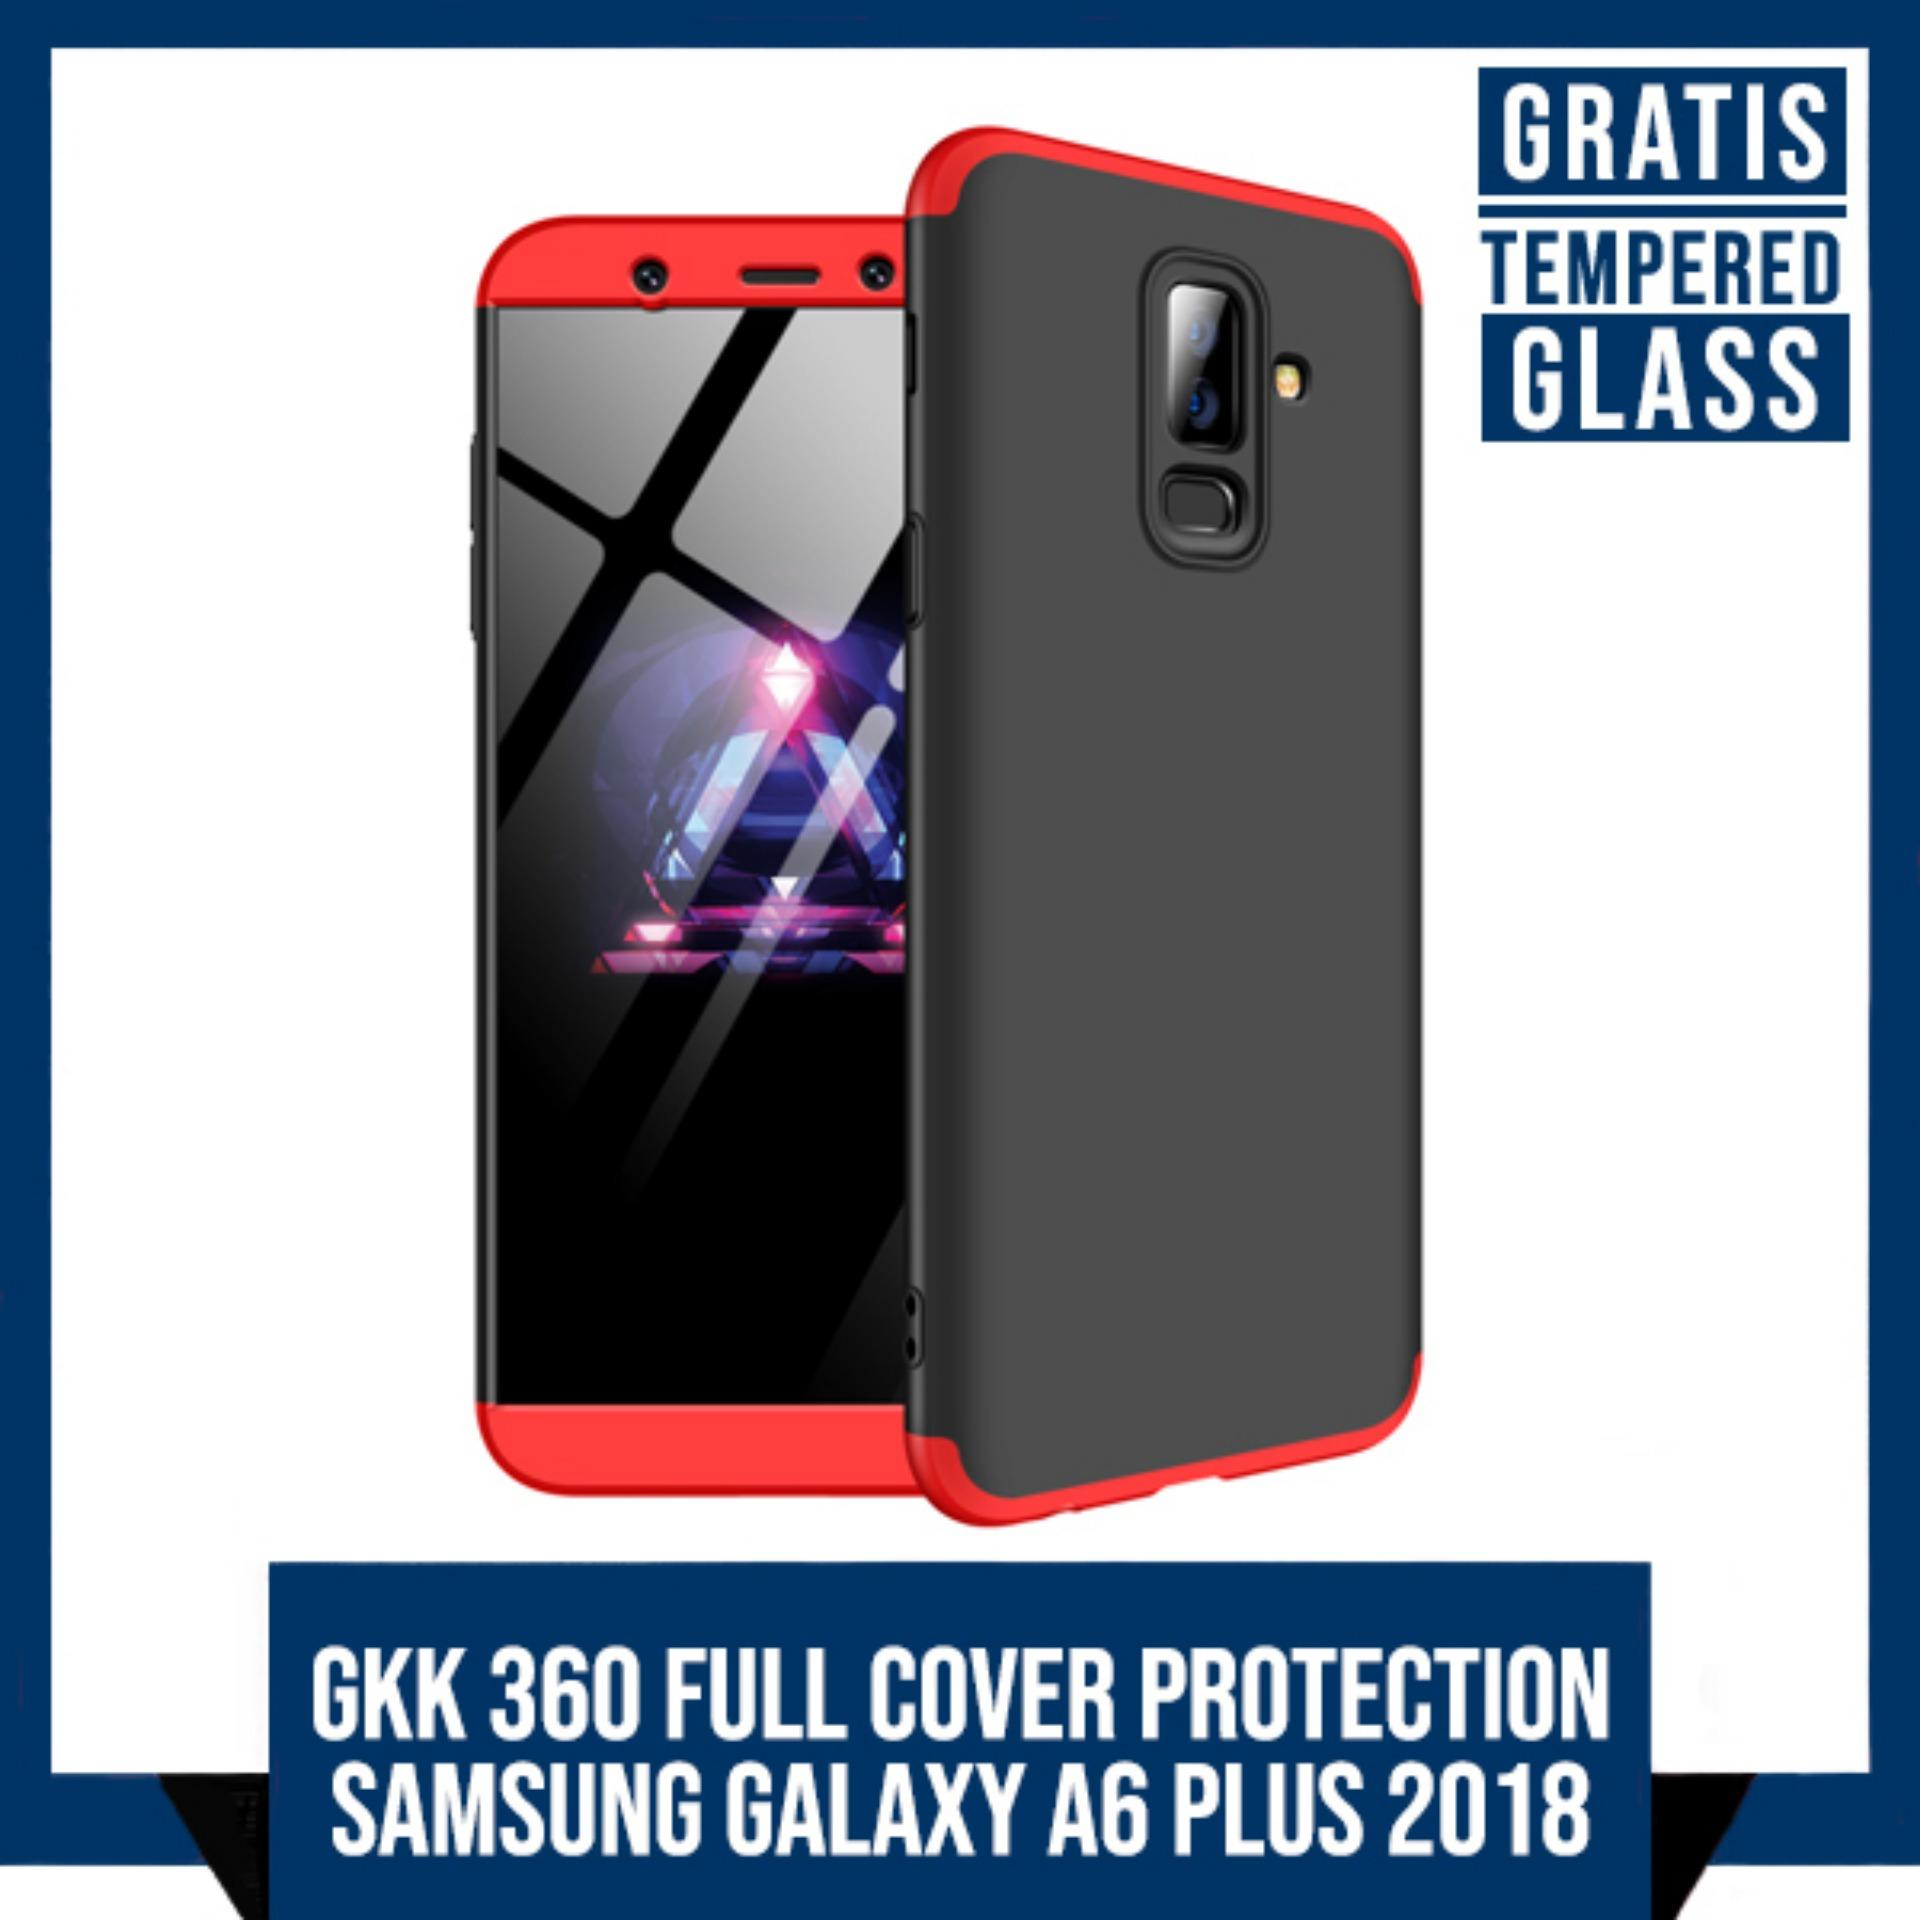 CASE SAMSUNG GALAXY A6 PLUS 2018 GKK ORIGINAL FULL COVER 360 PROTECTION